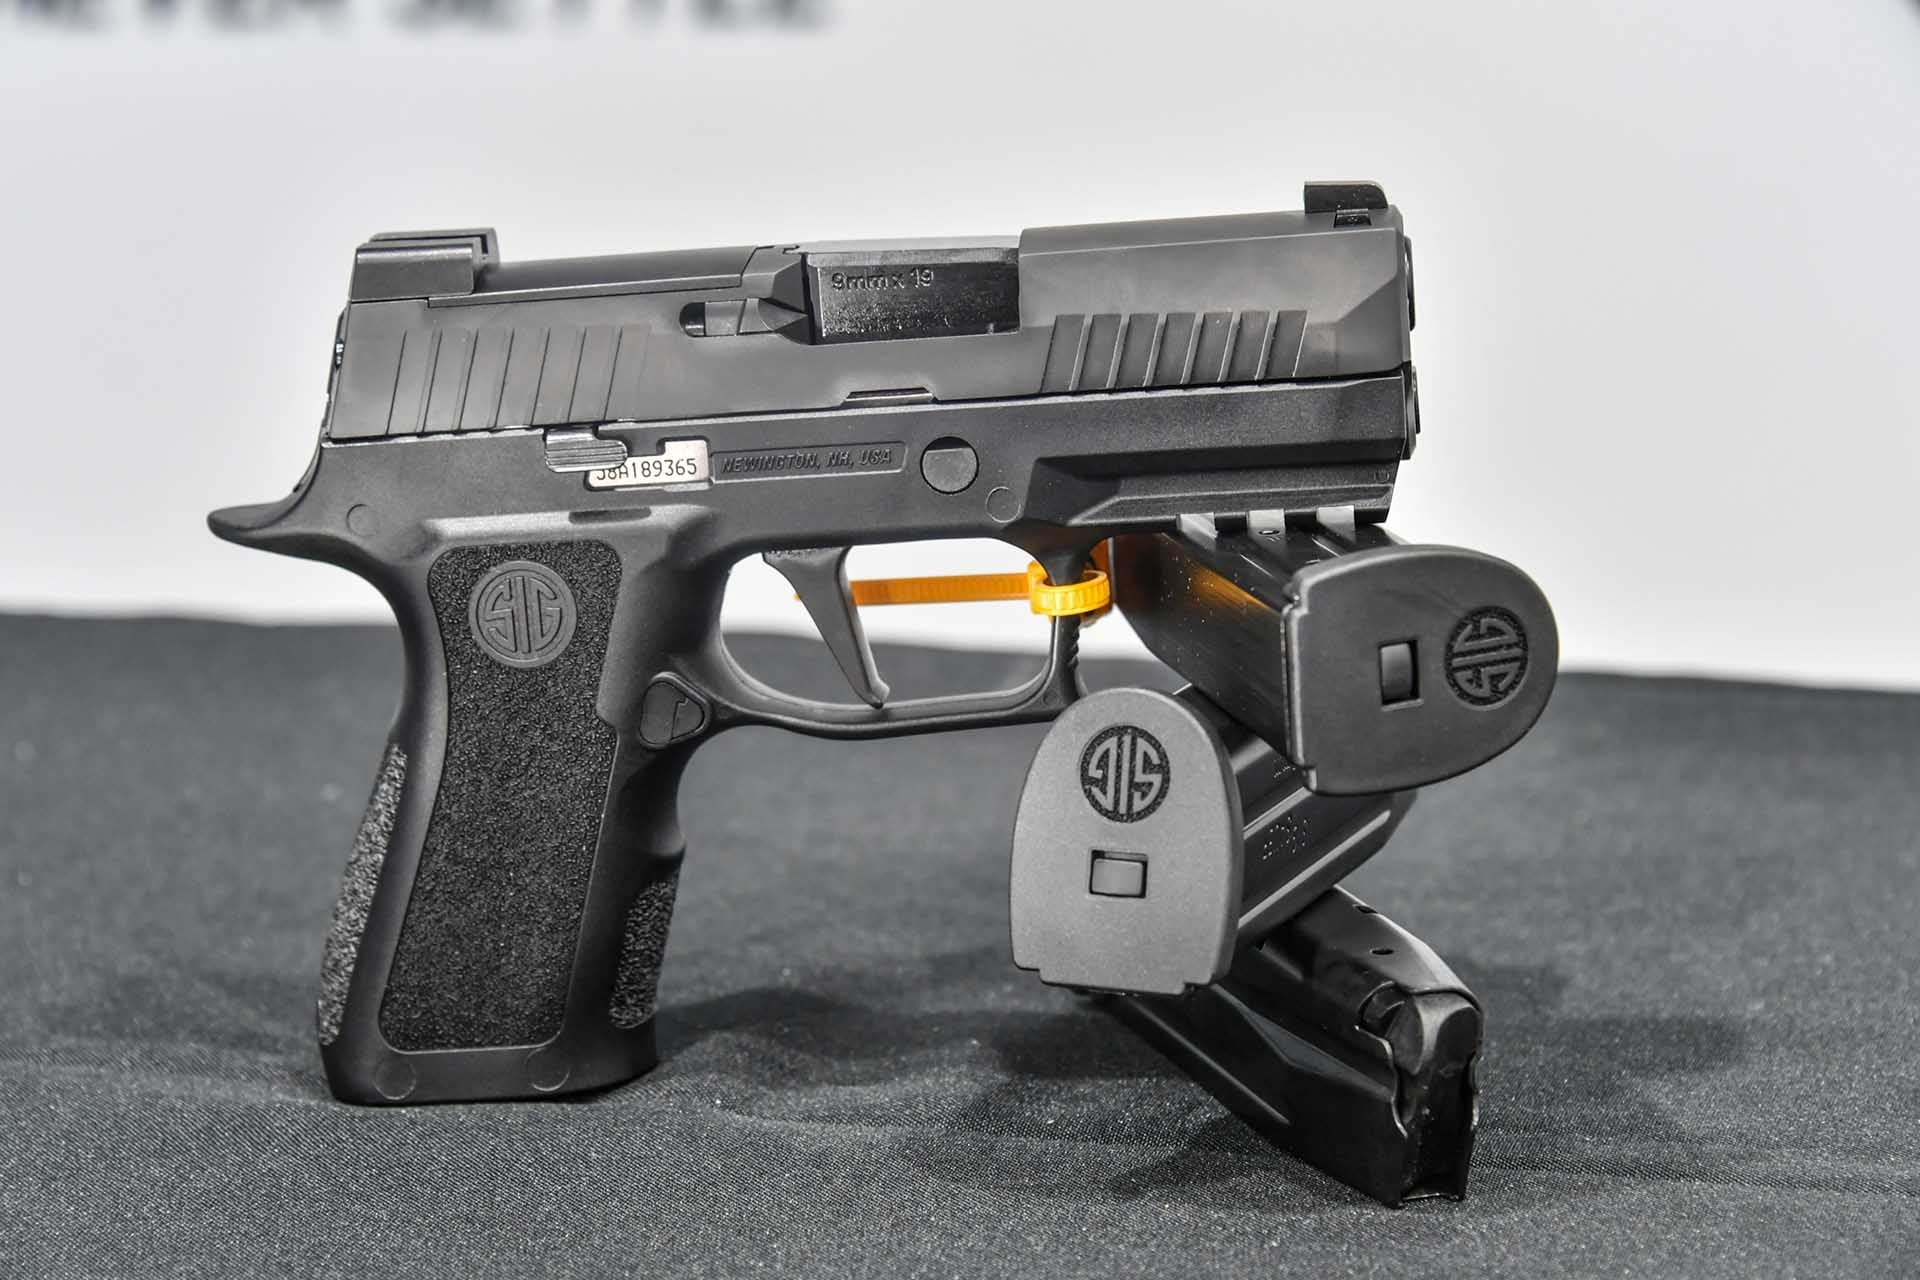 The SIG Sauer P320 X-Compact, left side